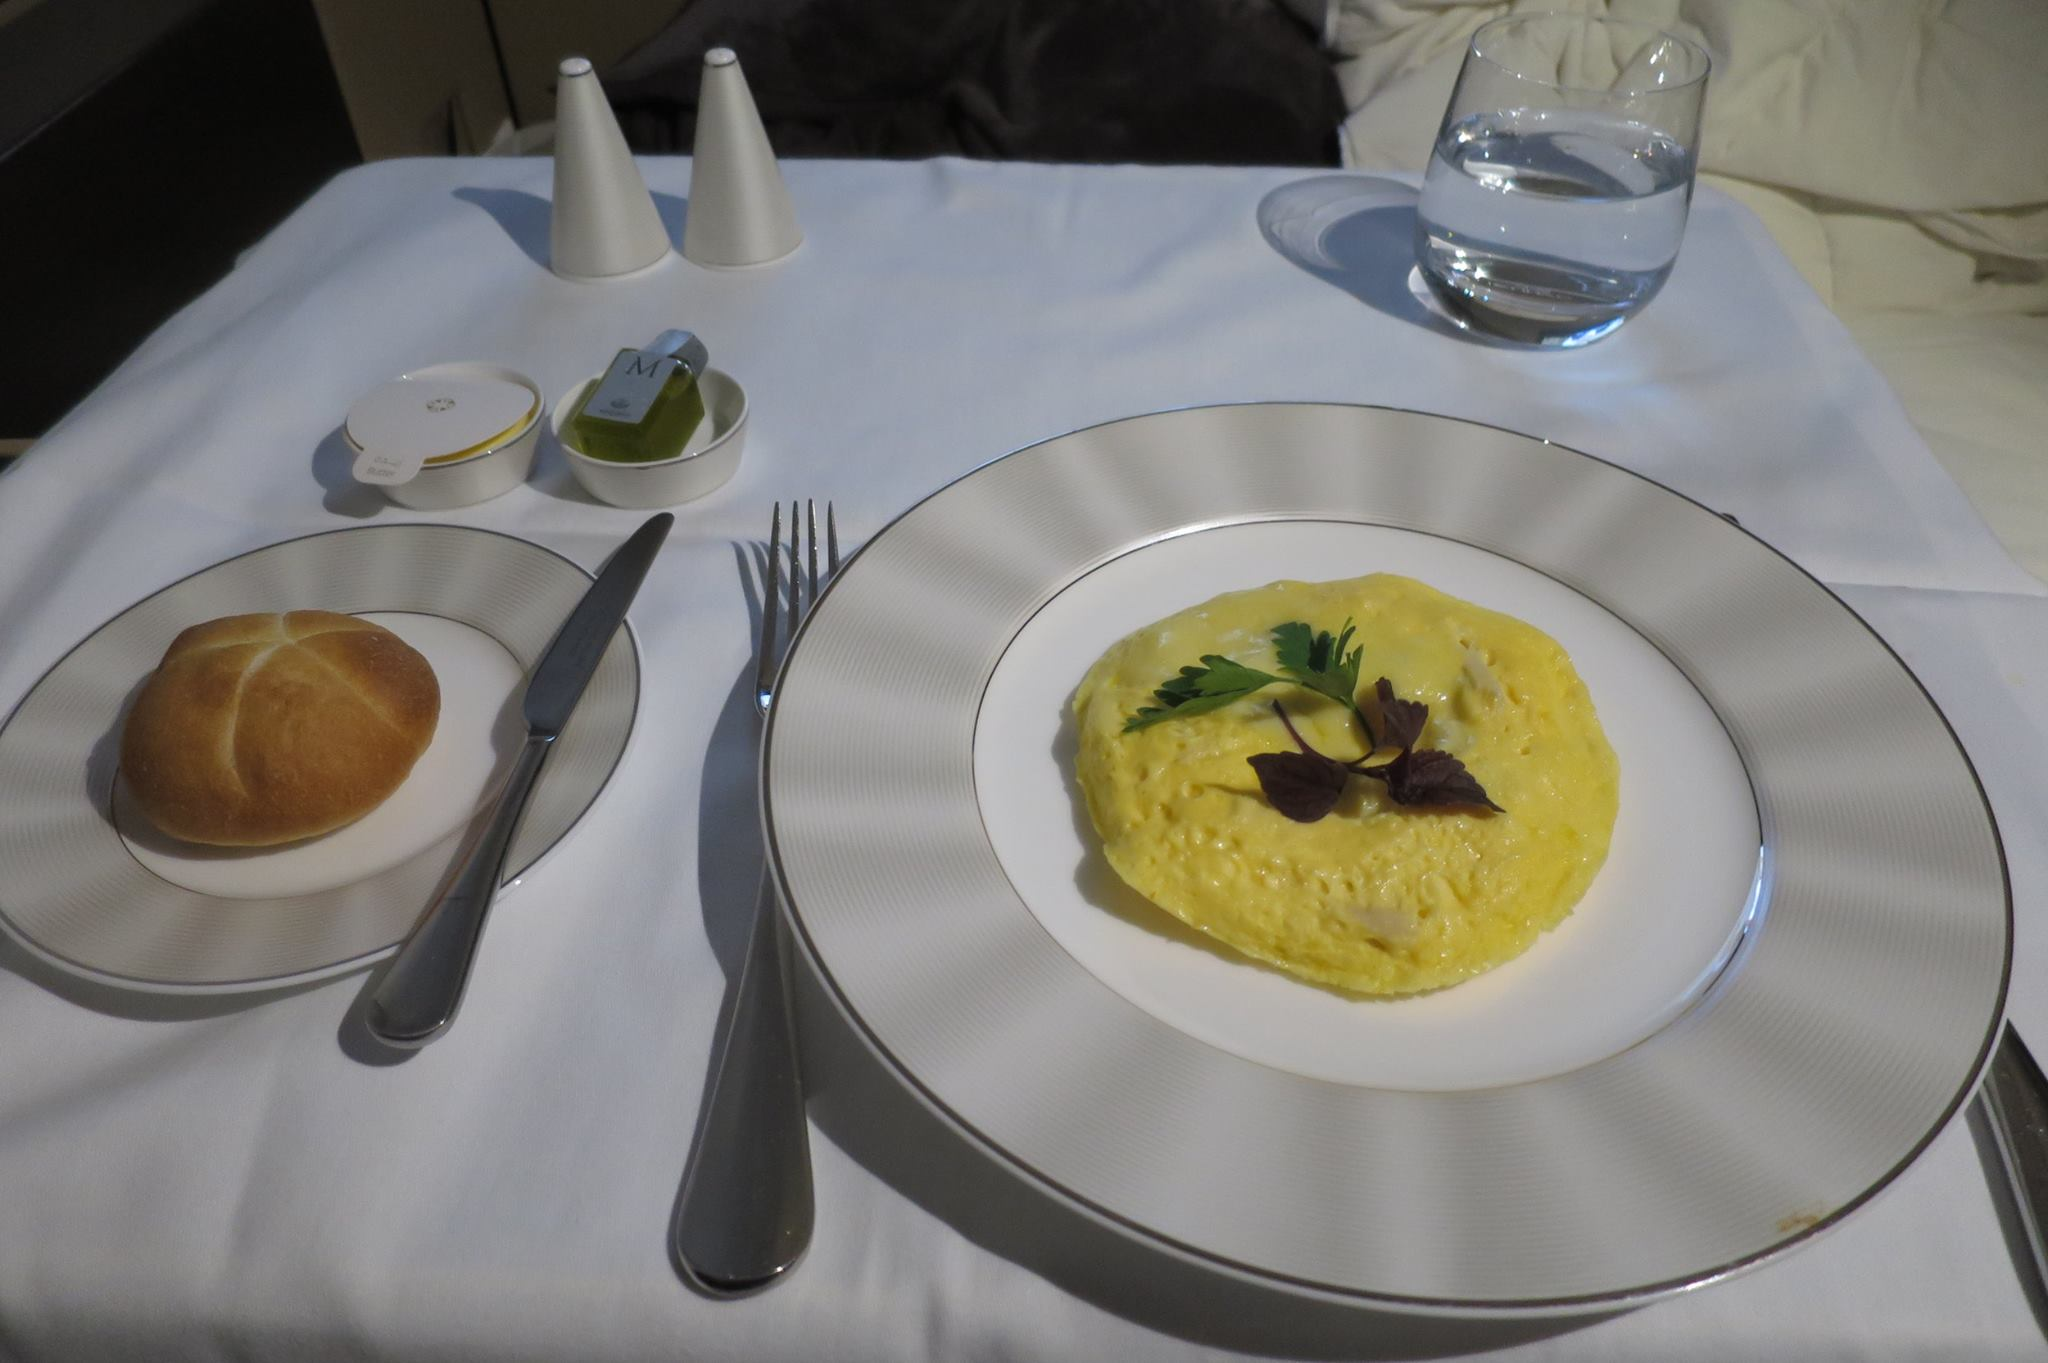 They emphasize that the meal service is anytime, on-demand. Here is a made-to-order omelette